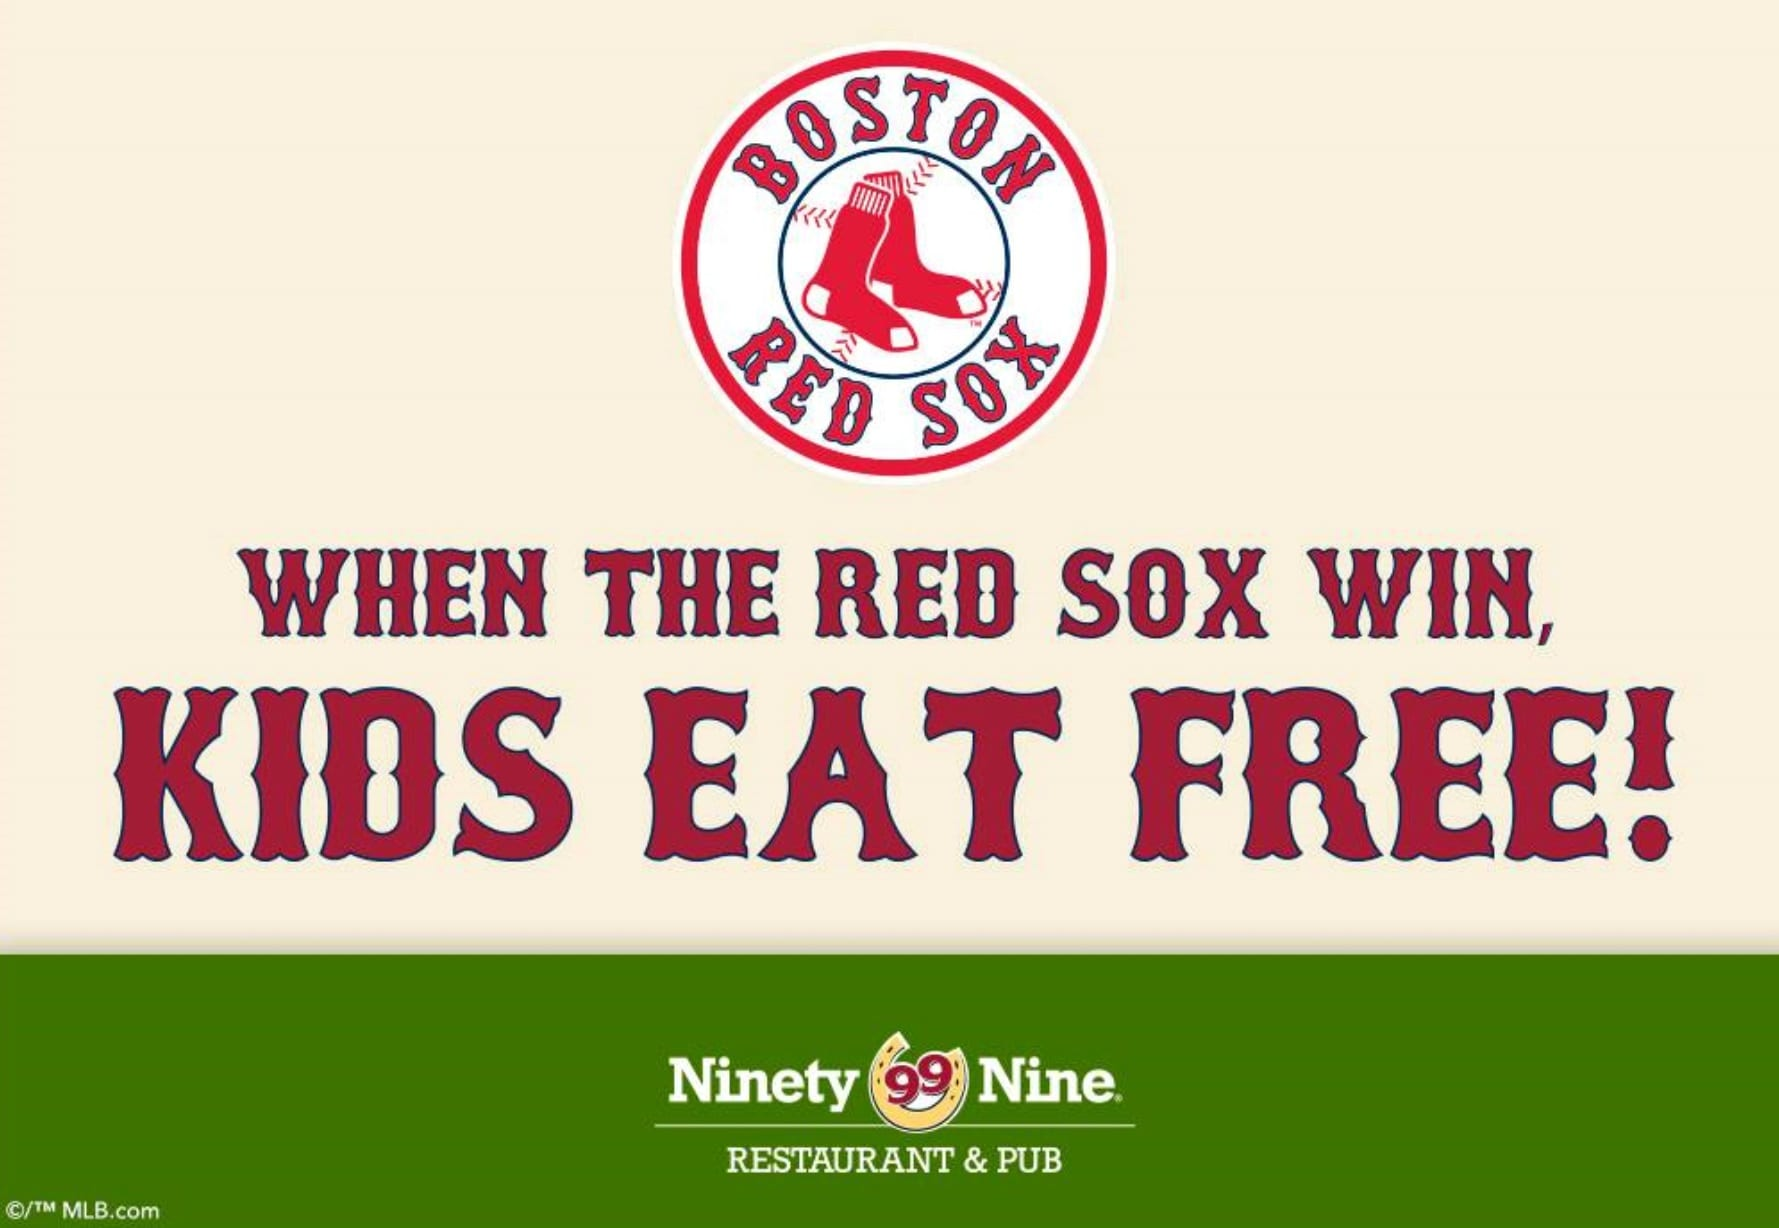 99 Red Sox Promo 2016